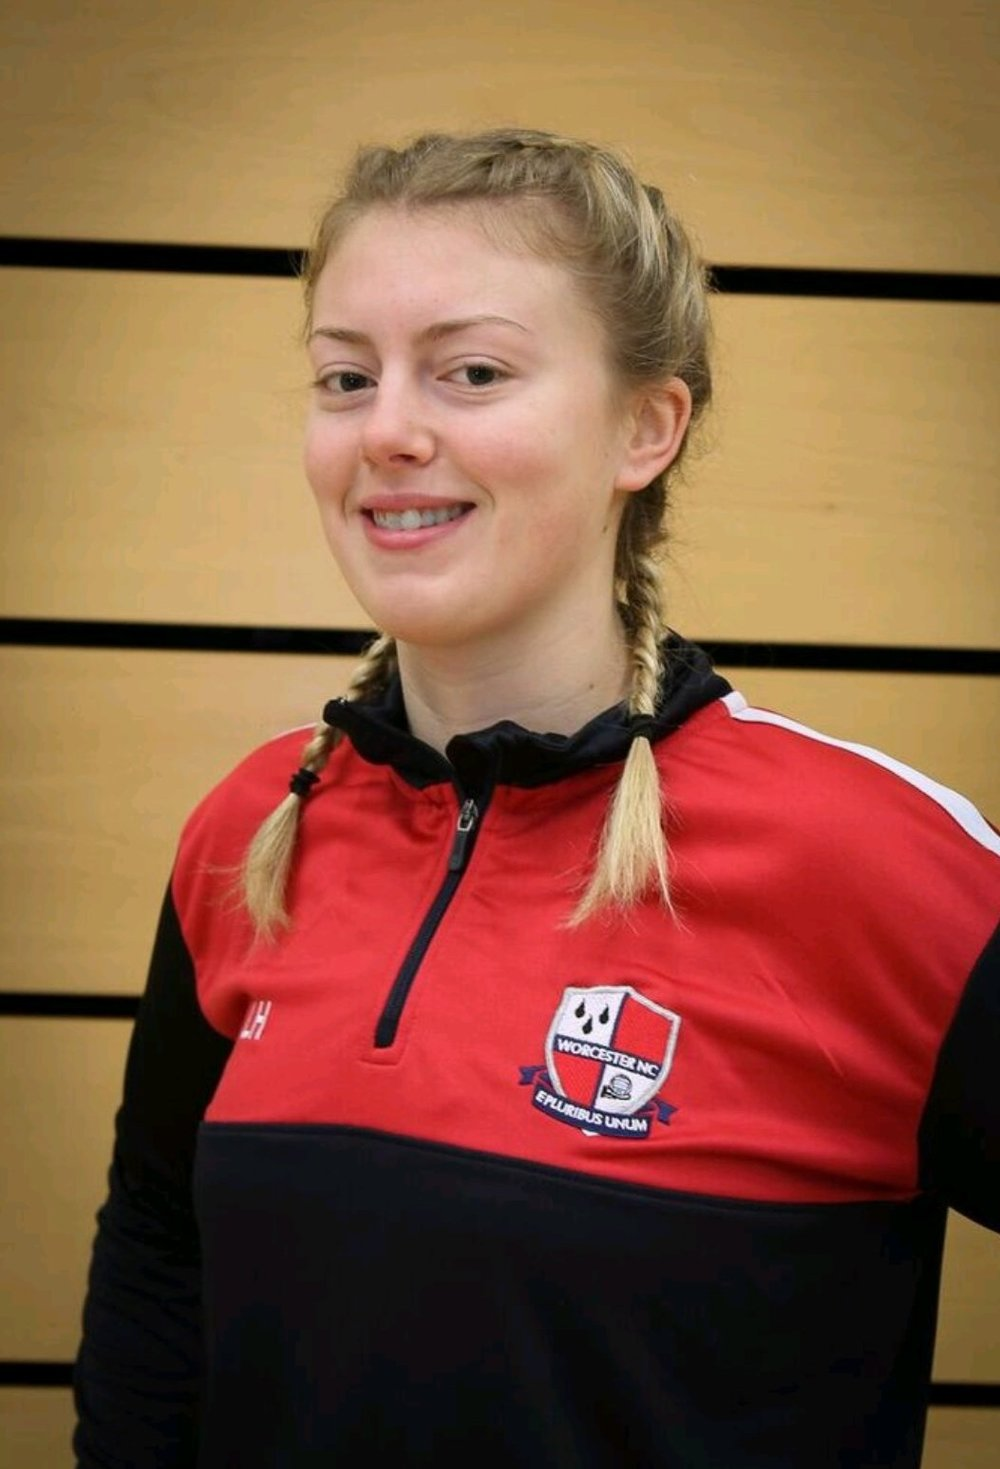 Lucy Herdman, 22, has been selected to represent England at the Nets World Championships in South Africa!